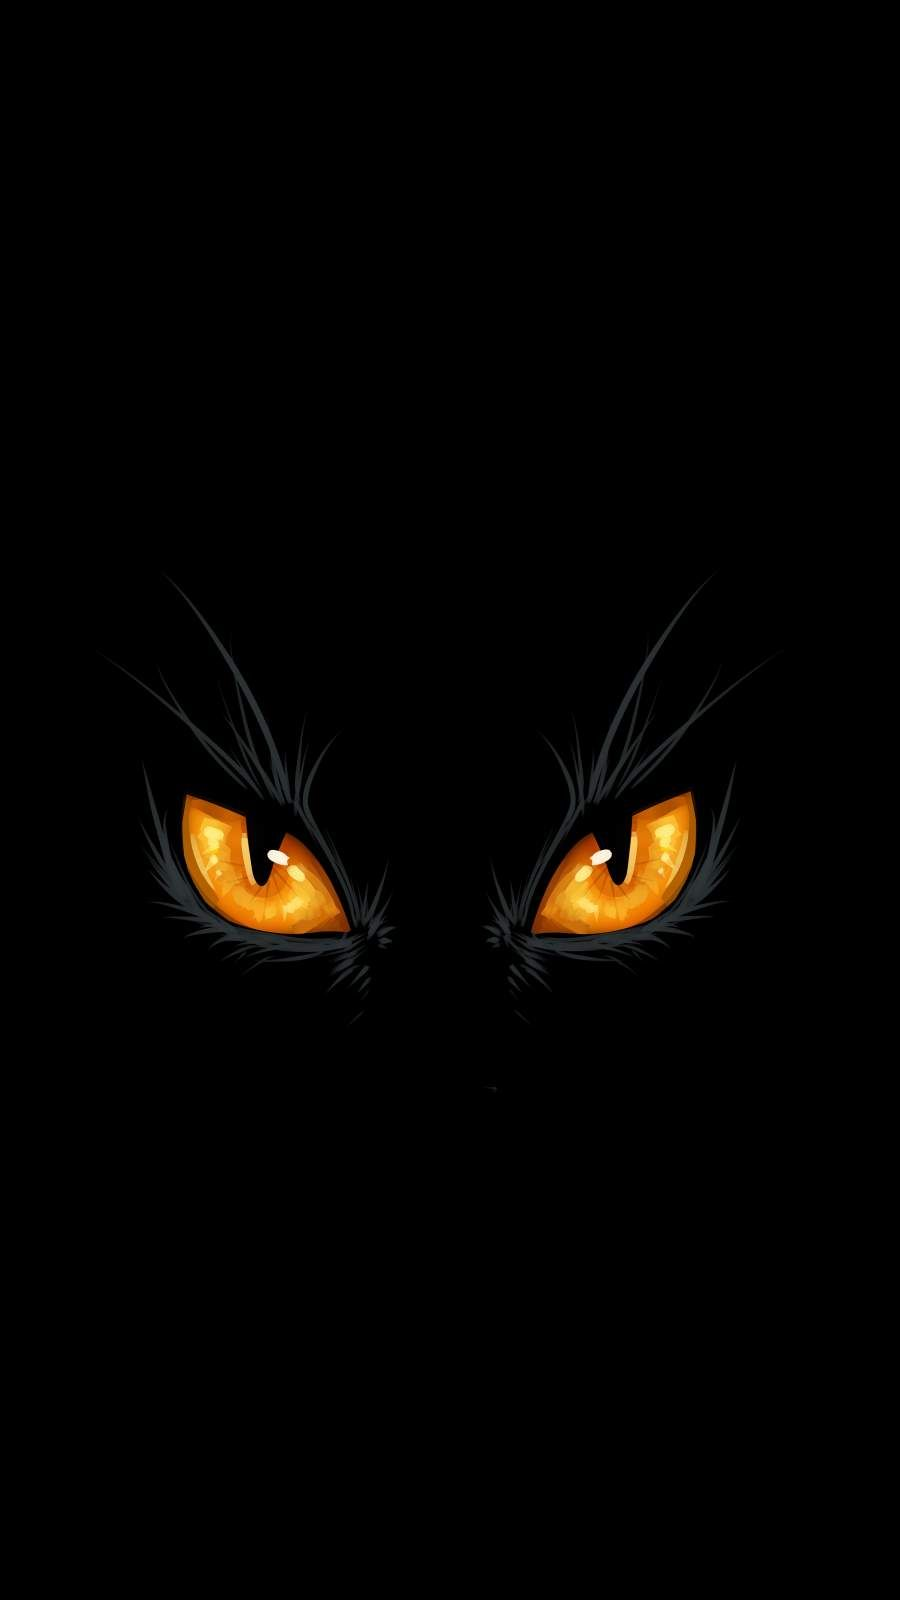 Black Cat Eyes Iphone Wallpaper Cat Wallpaper Eyes Wallpaper Black Phone Wallpaper